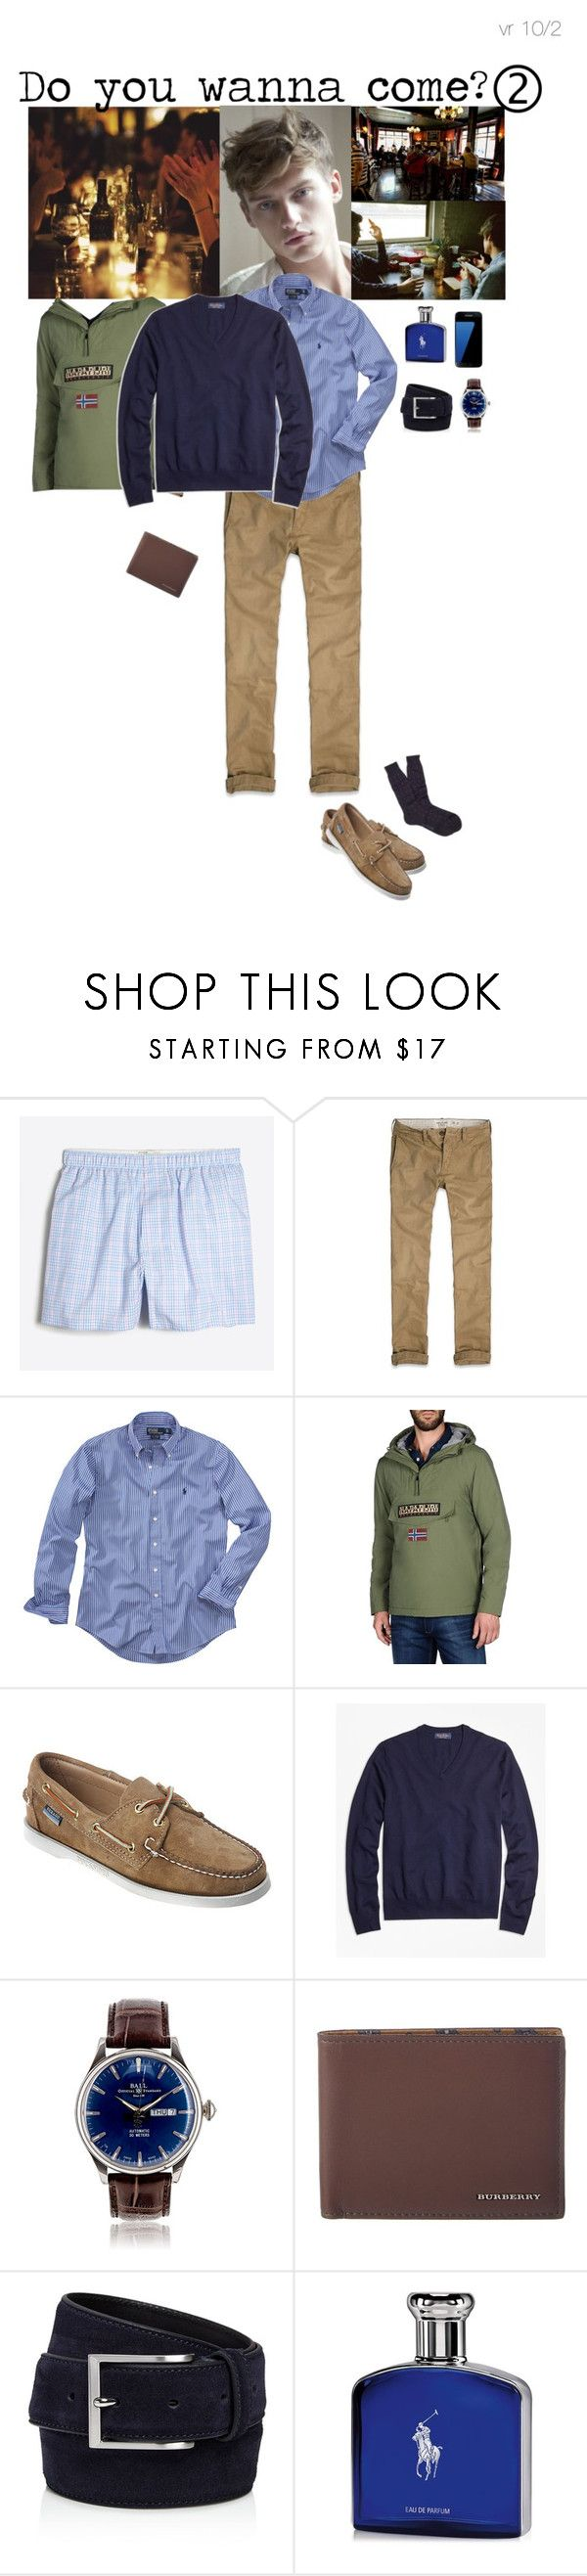 """""""Do you wanna come?"""" by adelaidesmitha ❤ liked on Polyvore featuring J.Crew, Abercrombie & Fitch, Polo Ralph Lauren, Napapijri, Sebago, Brooks Brothers, Burberry, To Boot New York, Samsung and Ralph Lauren"""